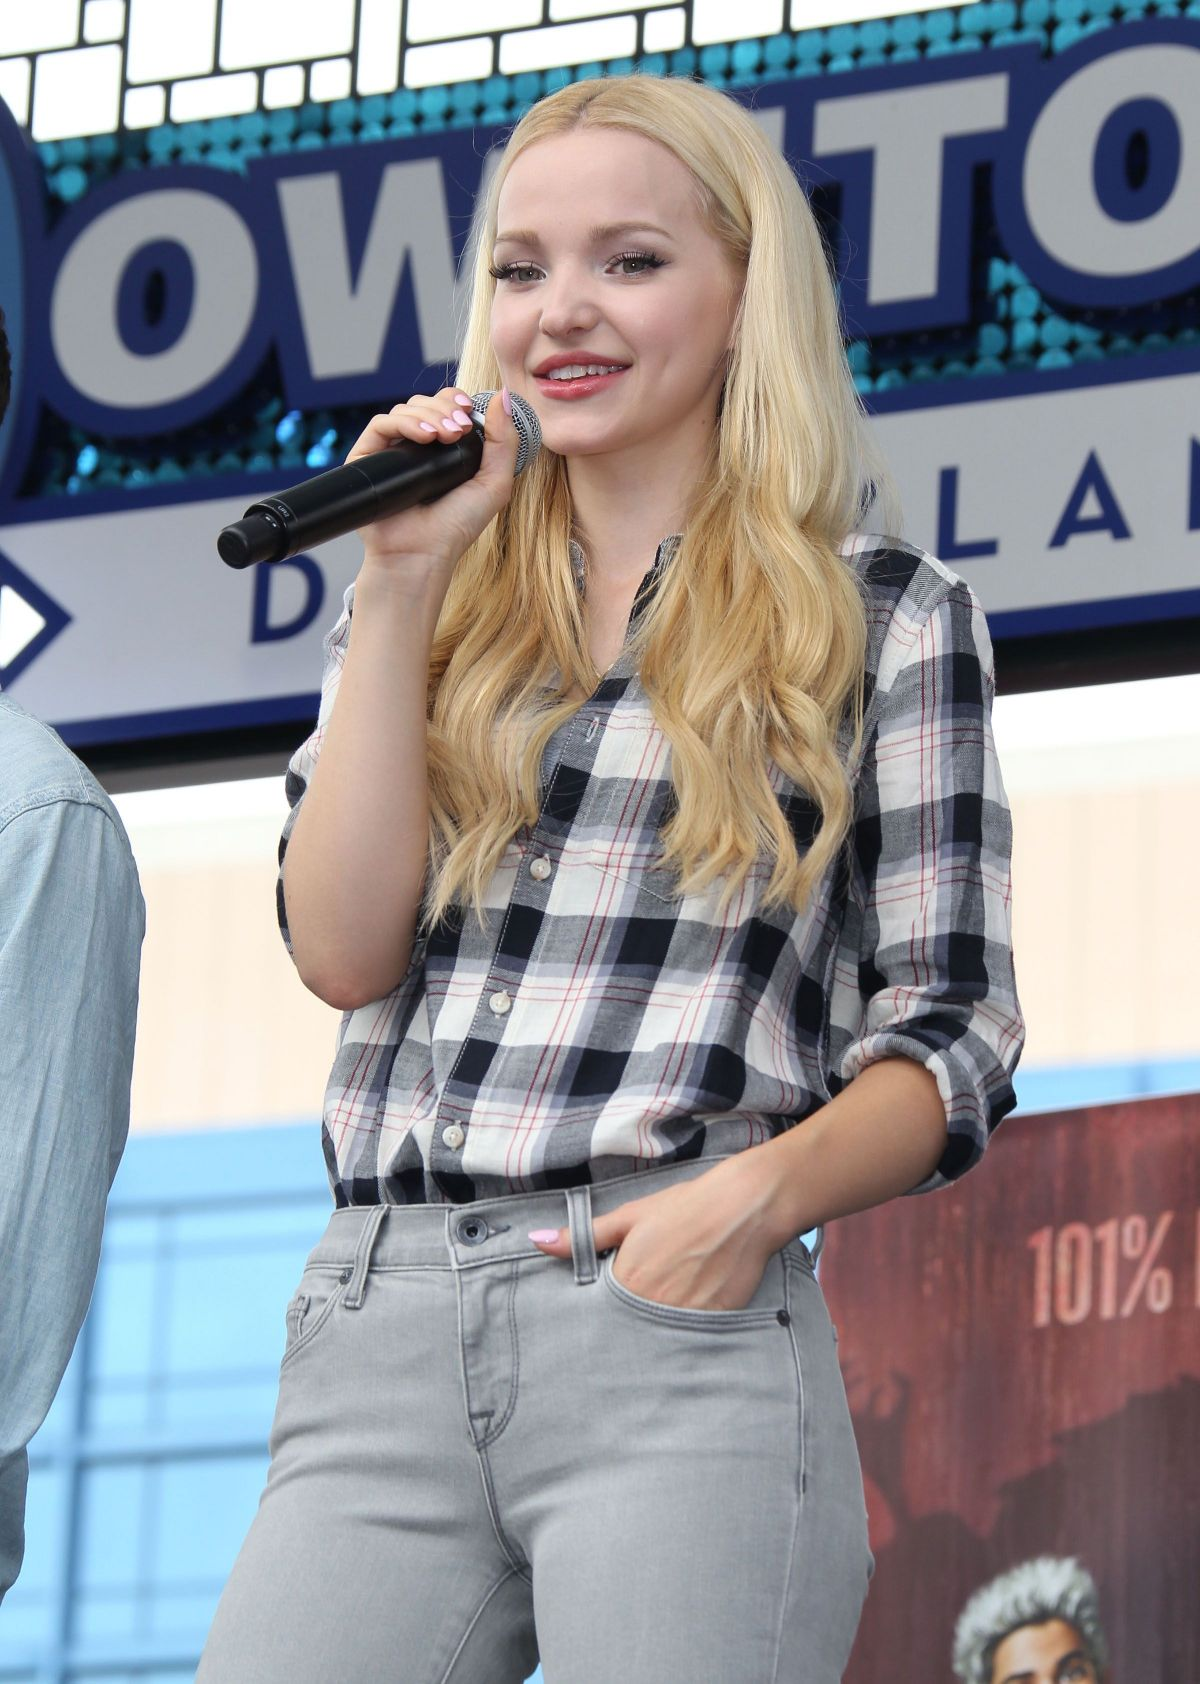 DOVE CAMERON at Descendants Stars at Downtown Disney in Anaheim 10/17/2015